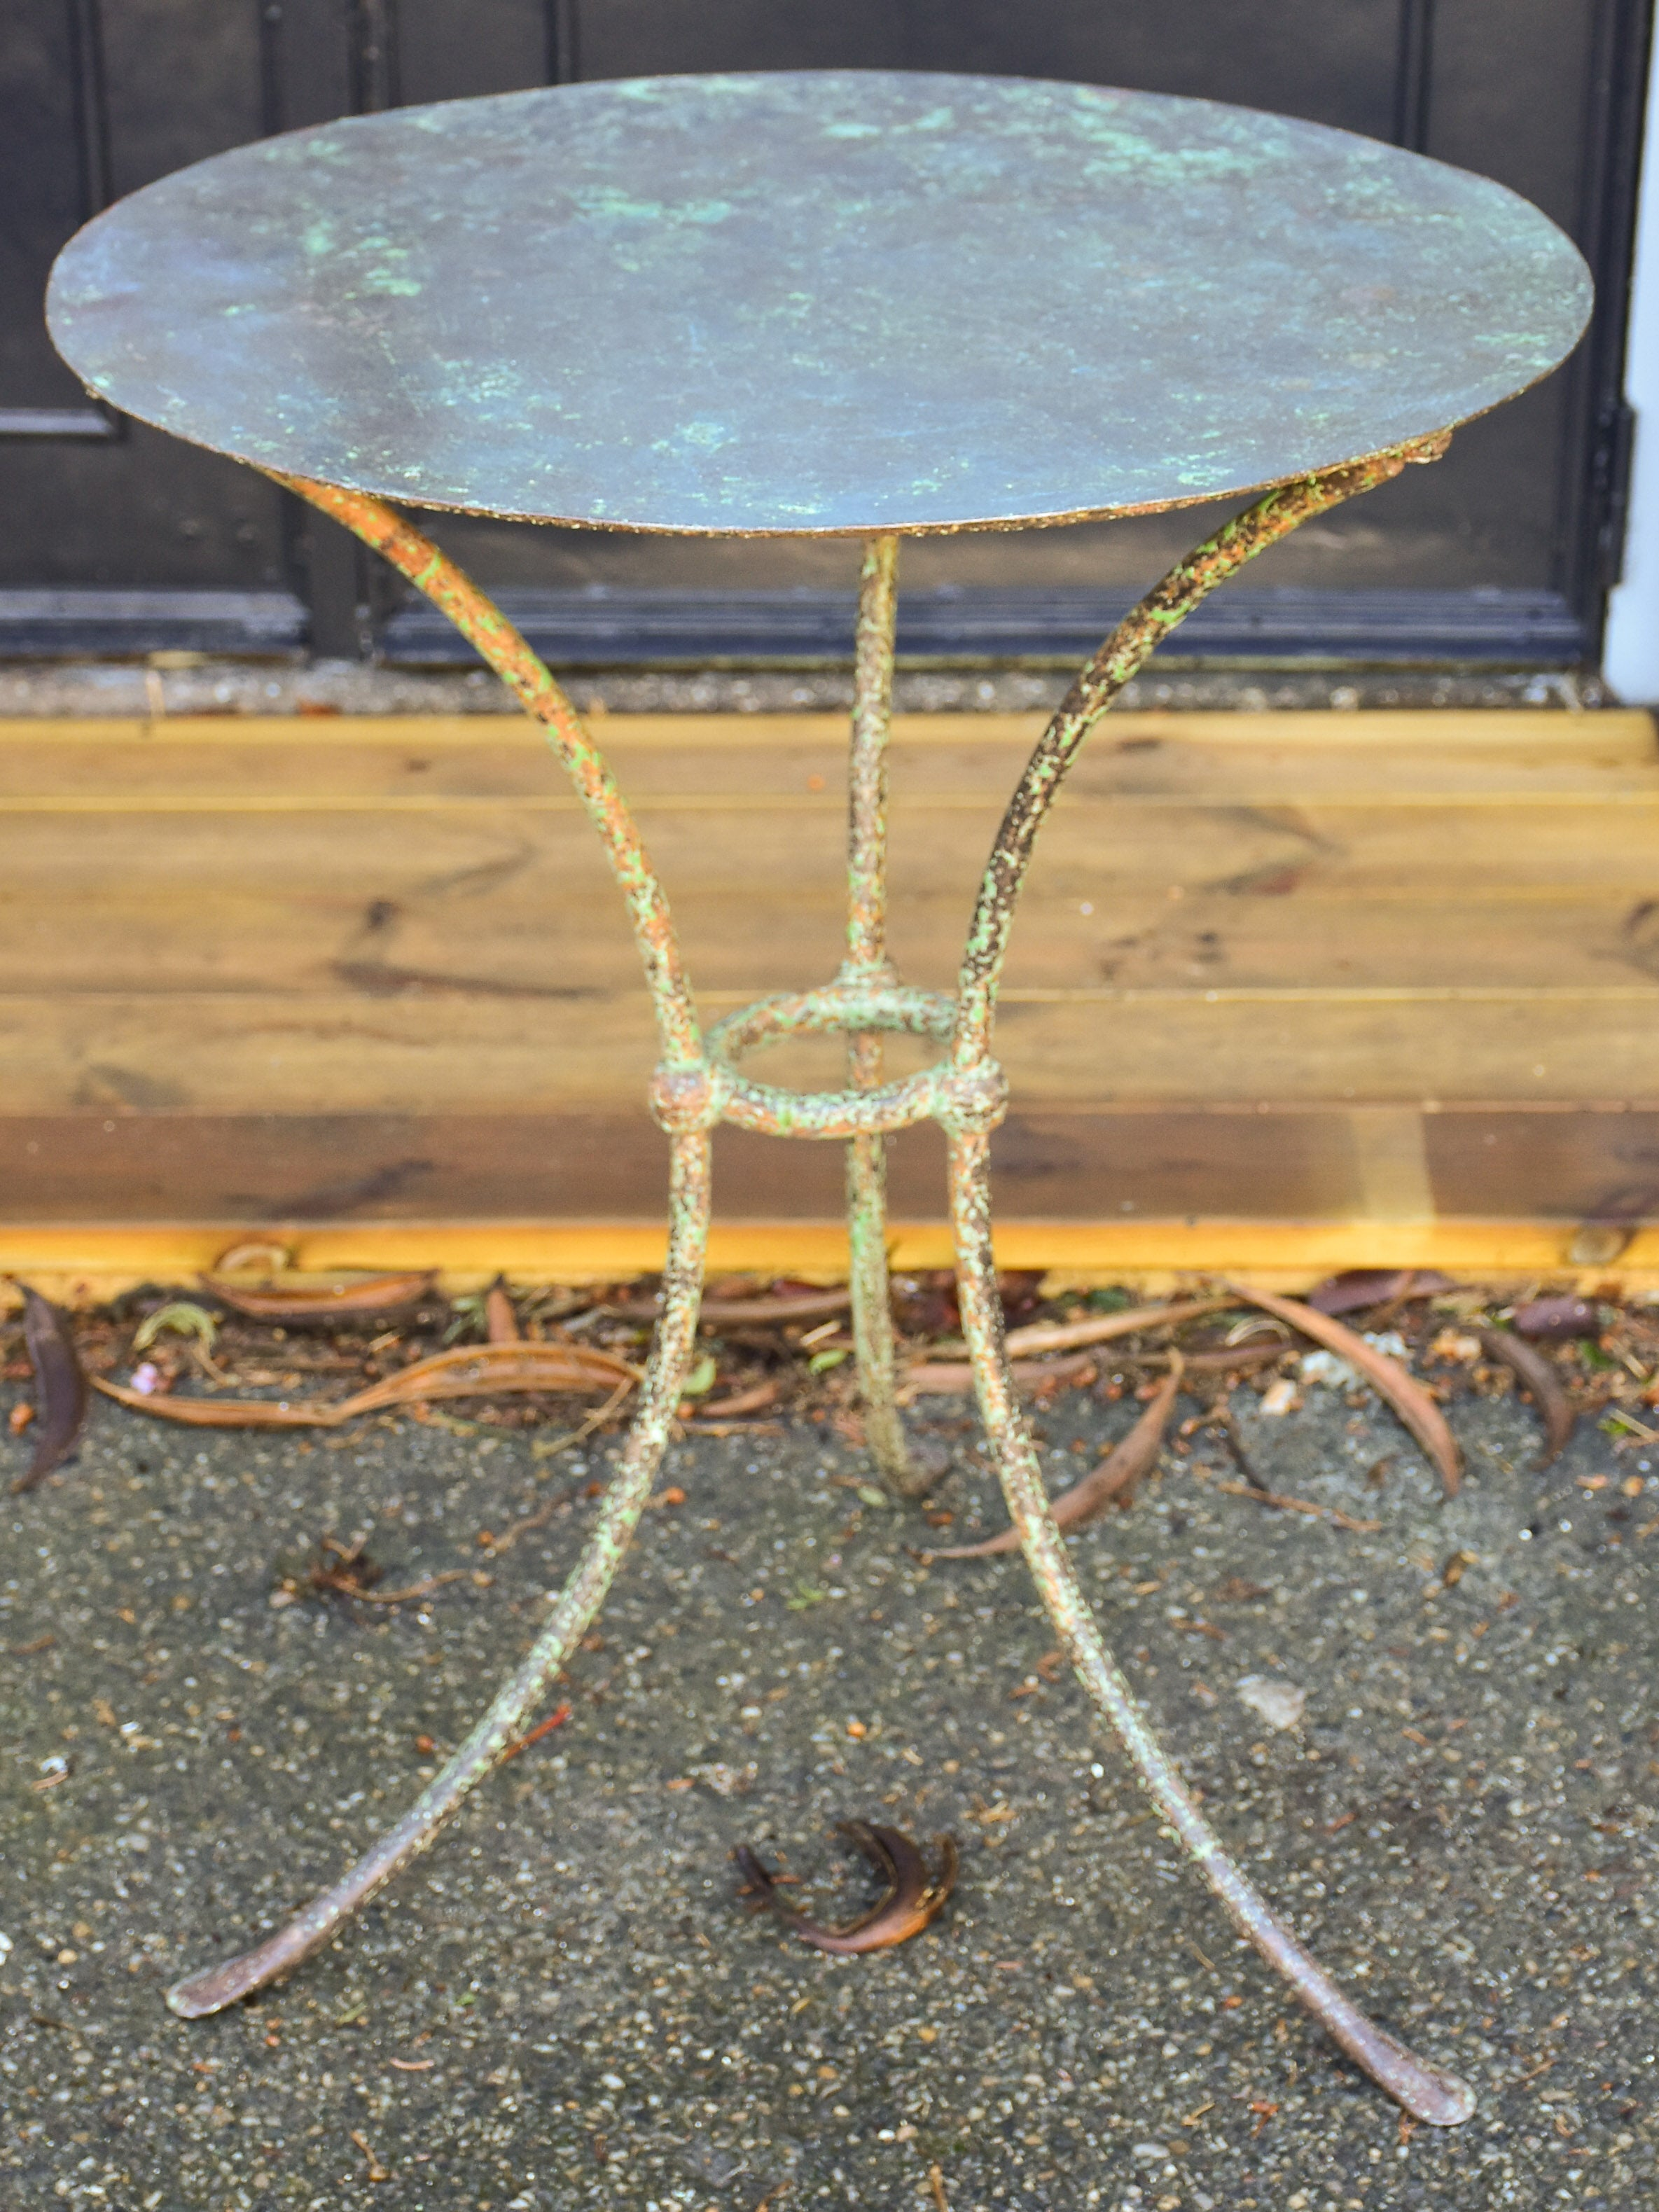 Round French garden table with green patina